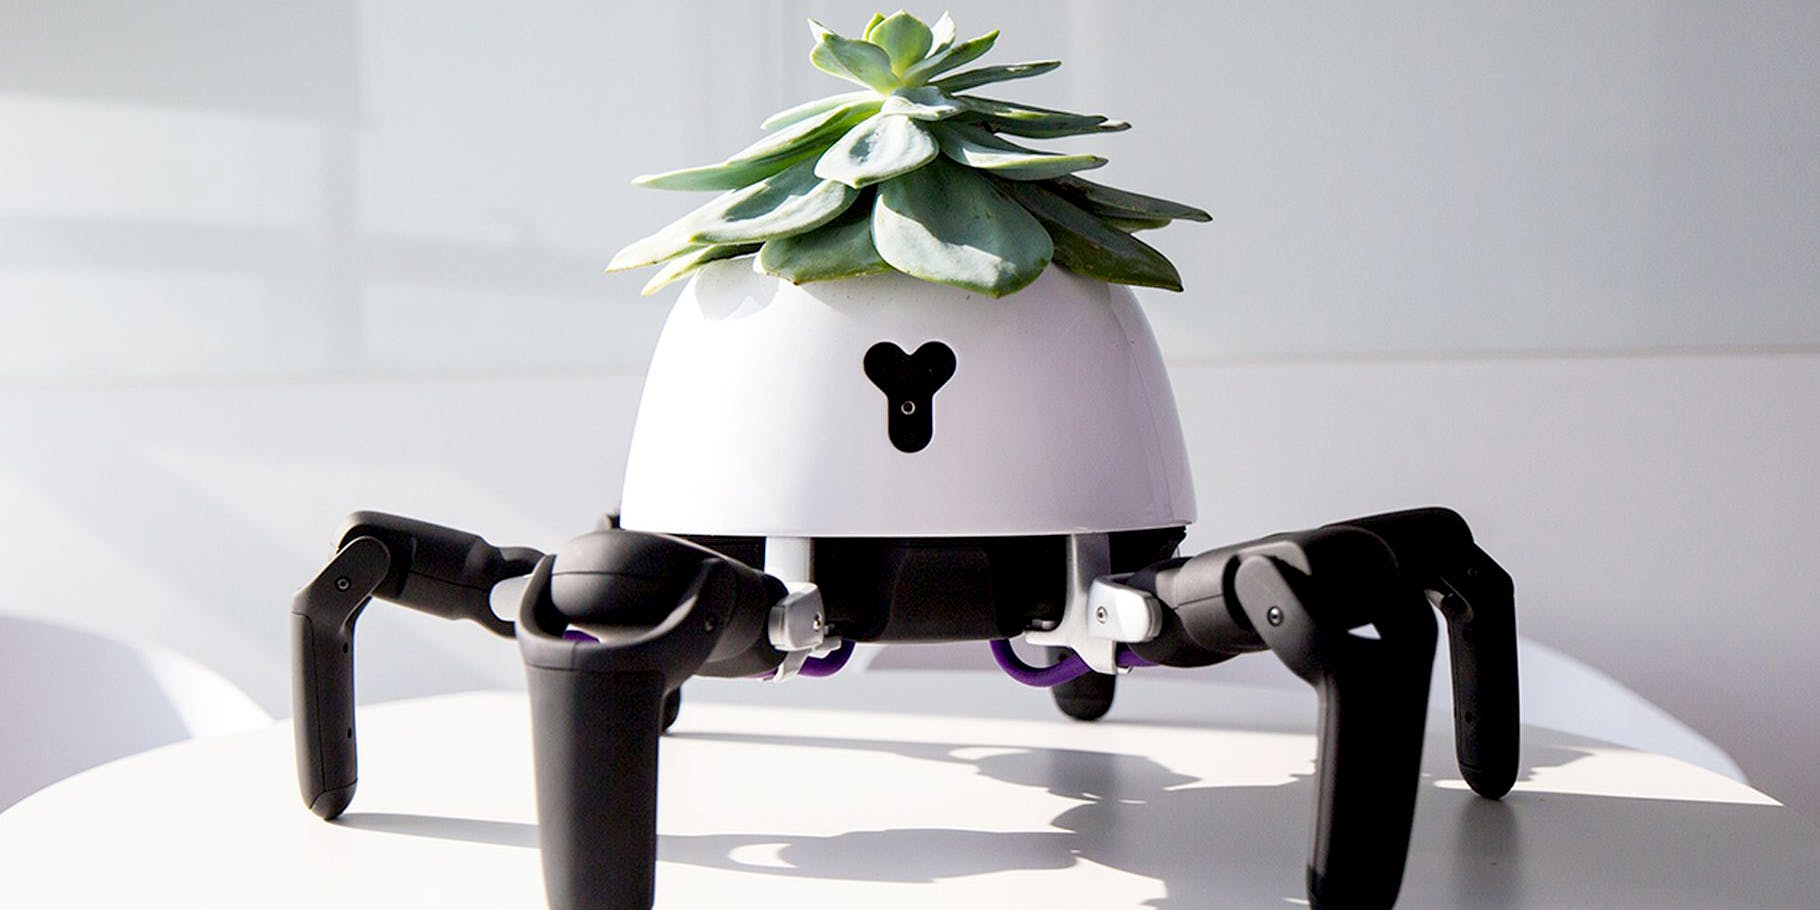 The World's Cutest Robot Will Move Your Plant In And Out Of The Sun